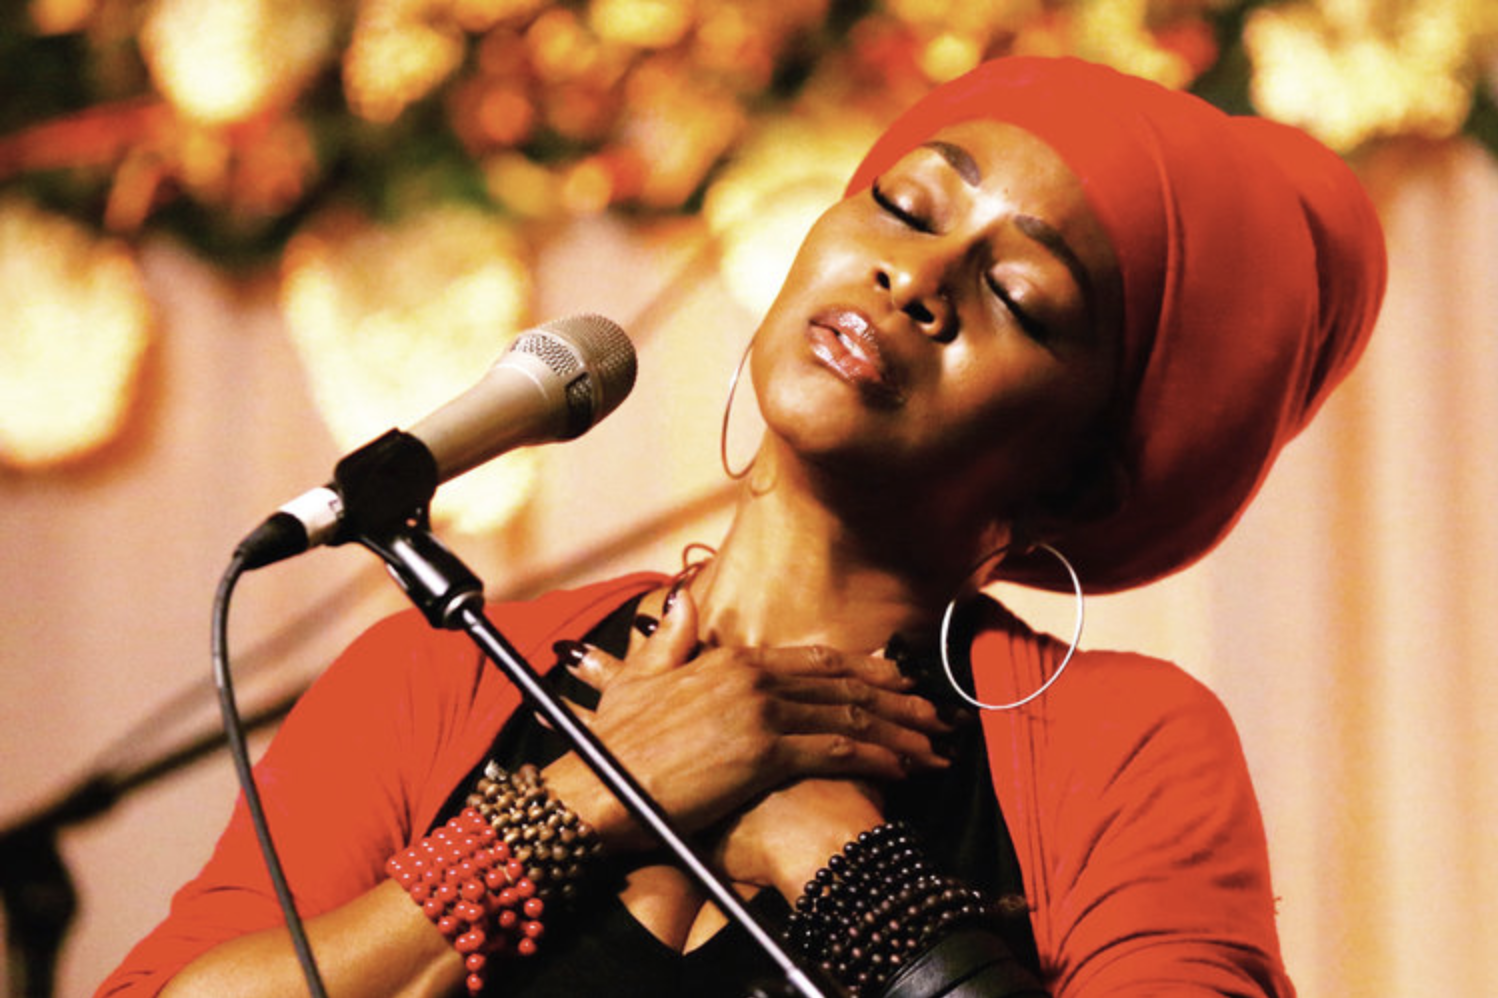 "C.C. White's concerts have won her worldwide recognition as ""The Queen of Soul Kirtan,"" enrapturing audiences like no other. Her critically acclaimed CD ""This IS Soul Kirtan!"" debuted at the top of the iTunes World Chart & is the first of its kind to feature a blend of Kirtan, Soul, Blues, Reggae, Gospel, R&B and Jazz. She's worked with Lenny Kravitz, Sting, Neil Young, Ben Harper, Charlie Musselwhite, Jackson Browne, Crosby, Stills & Nash, Joe Cocker, and Jason Mraz to name a few. Get ready for soul-freeing, foot-stomping, heart-opening Soul Kirtan!   www.soulkirtan.com"